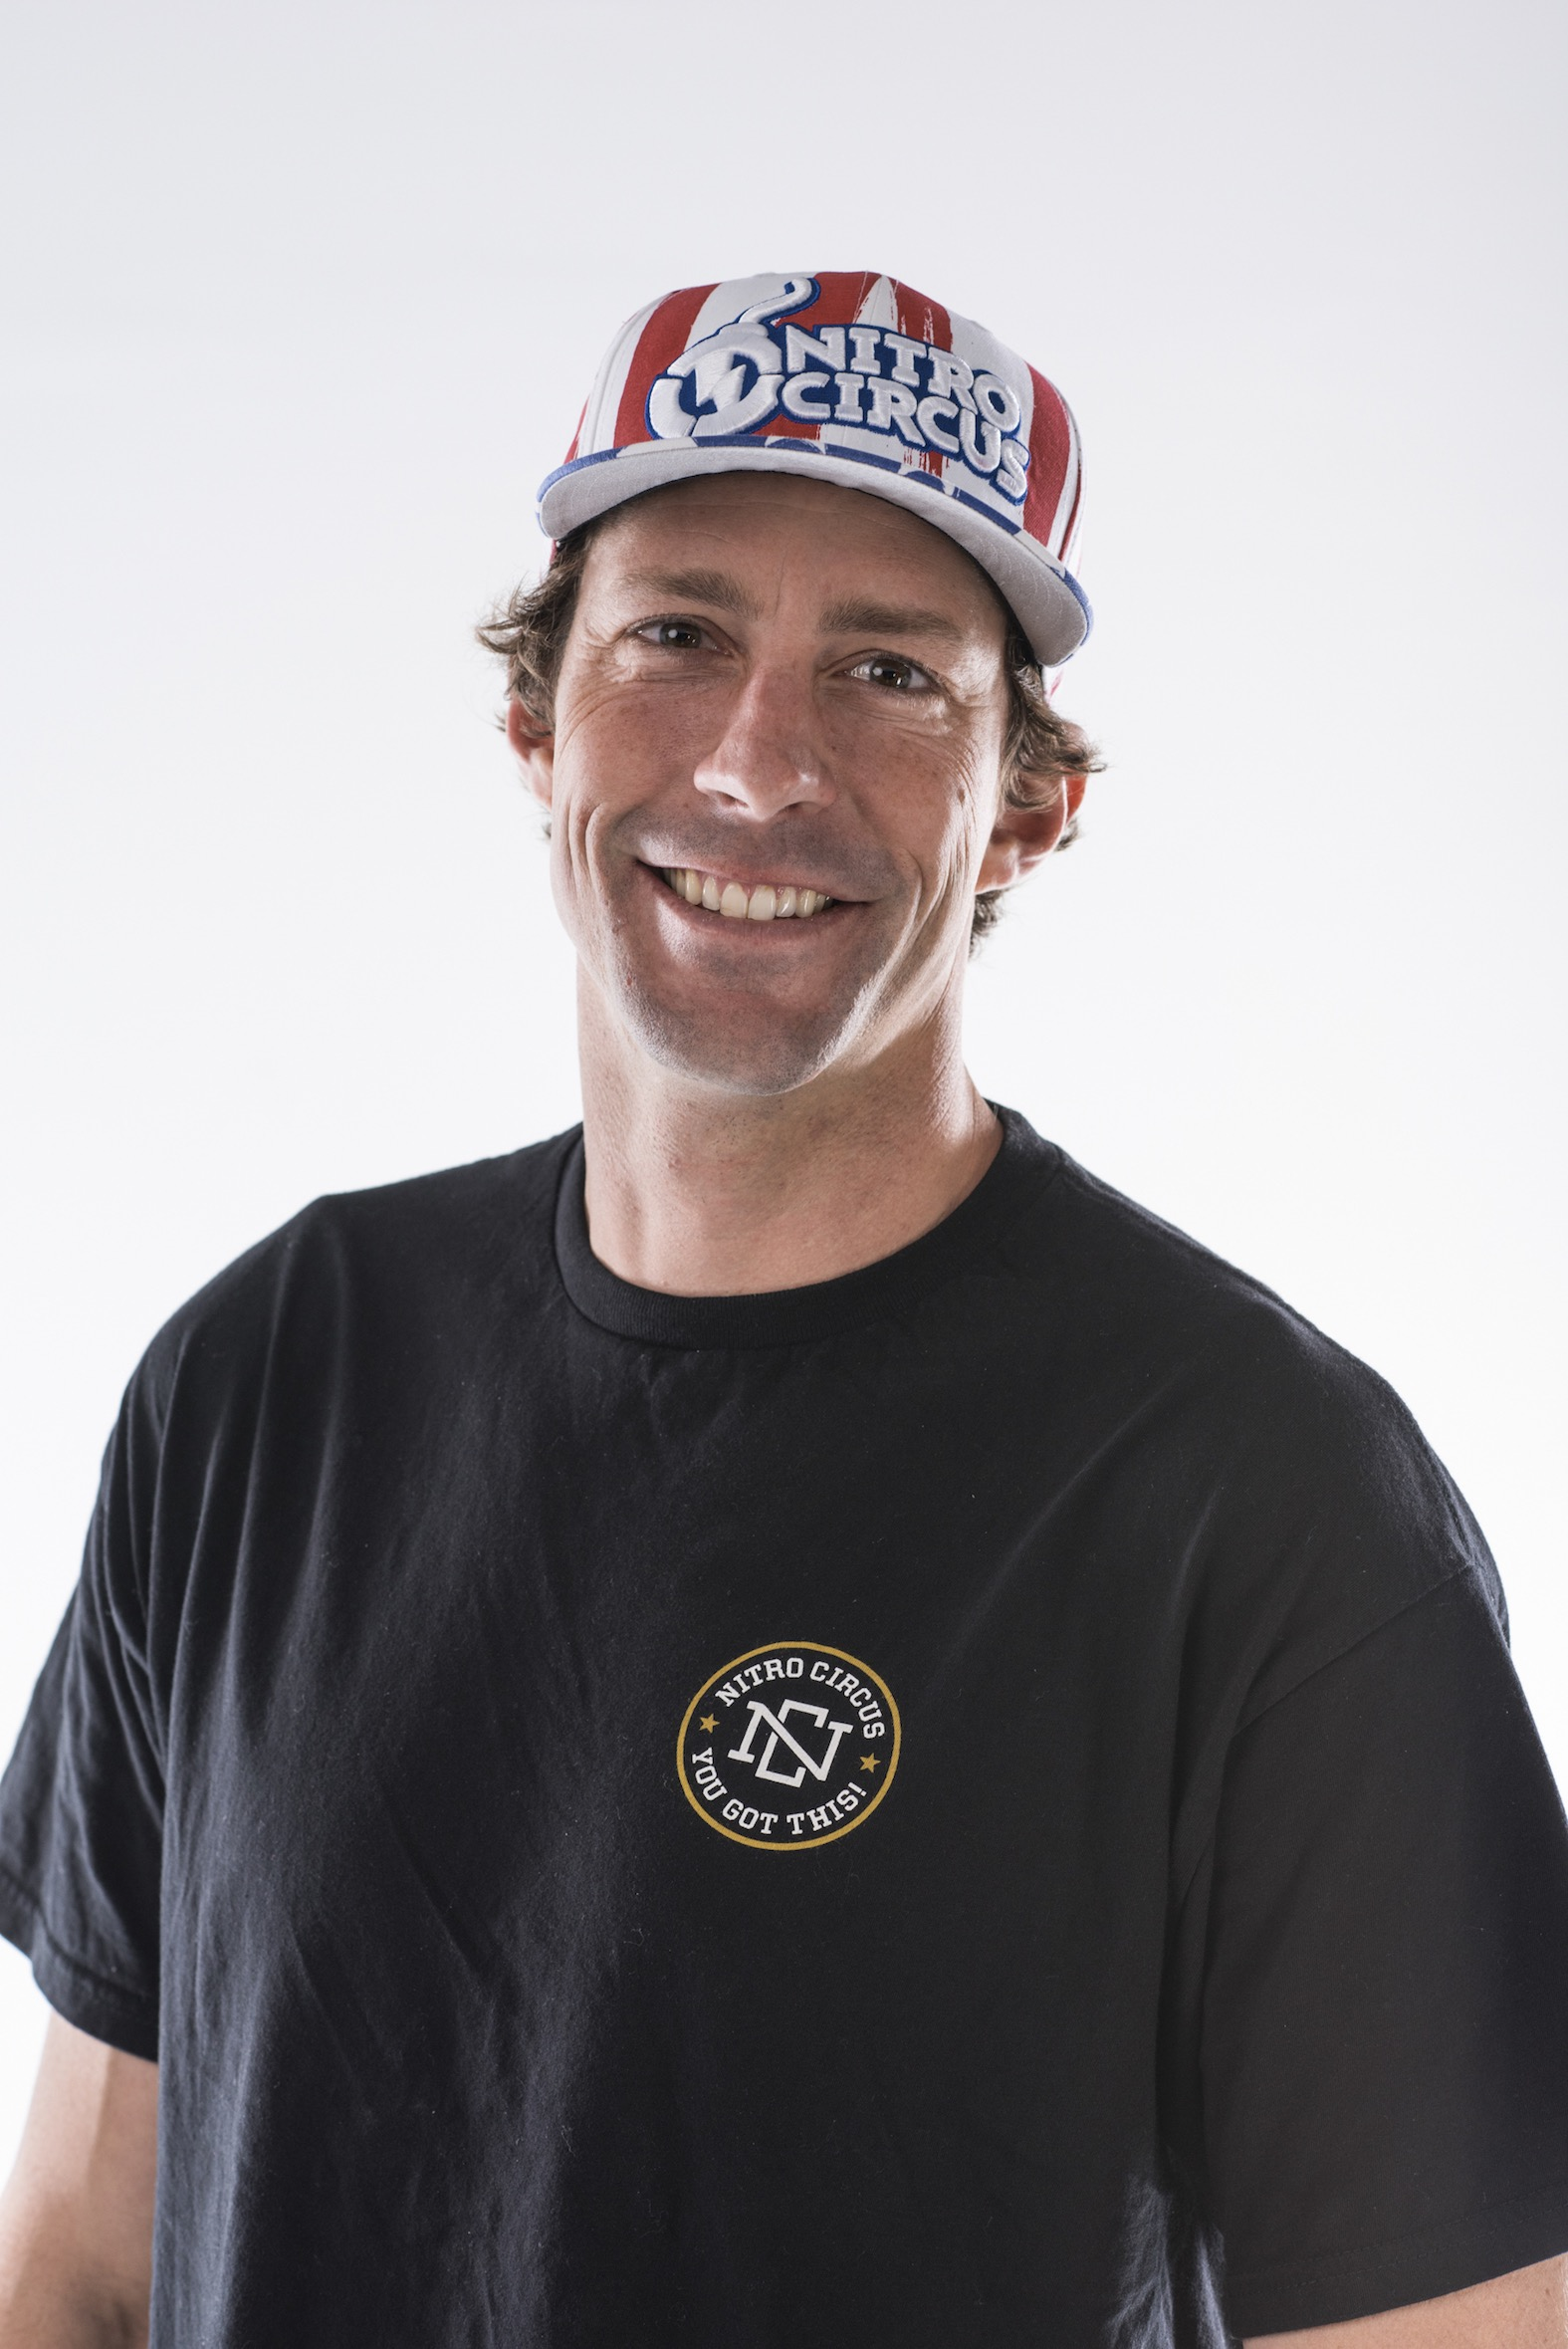 We interview the man himself, Travis Pastrana about Nitro Circus Live